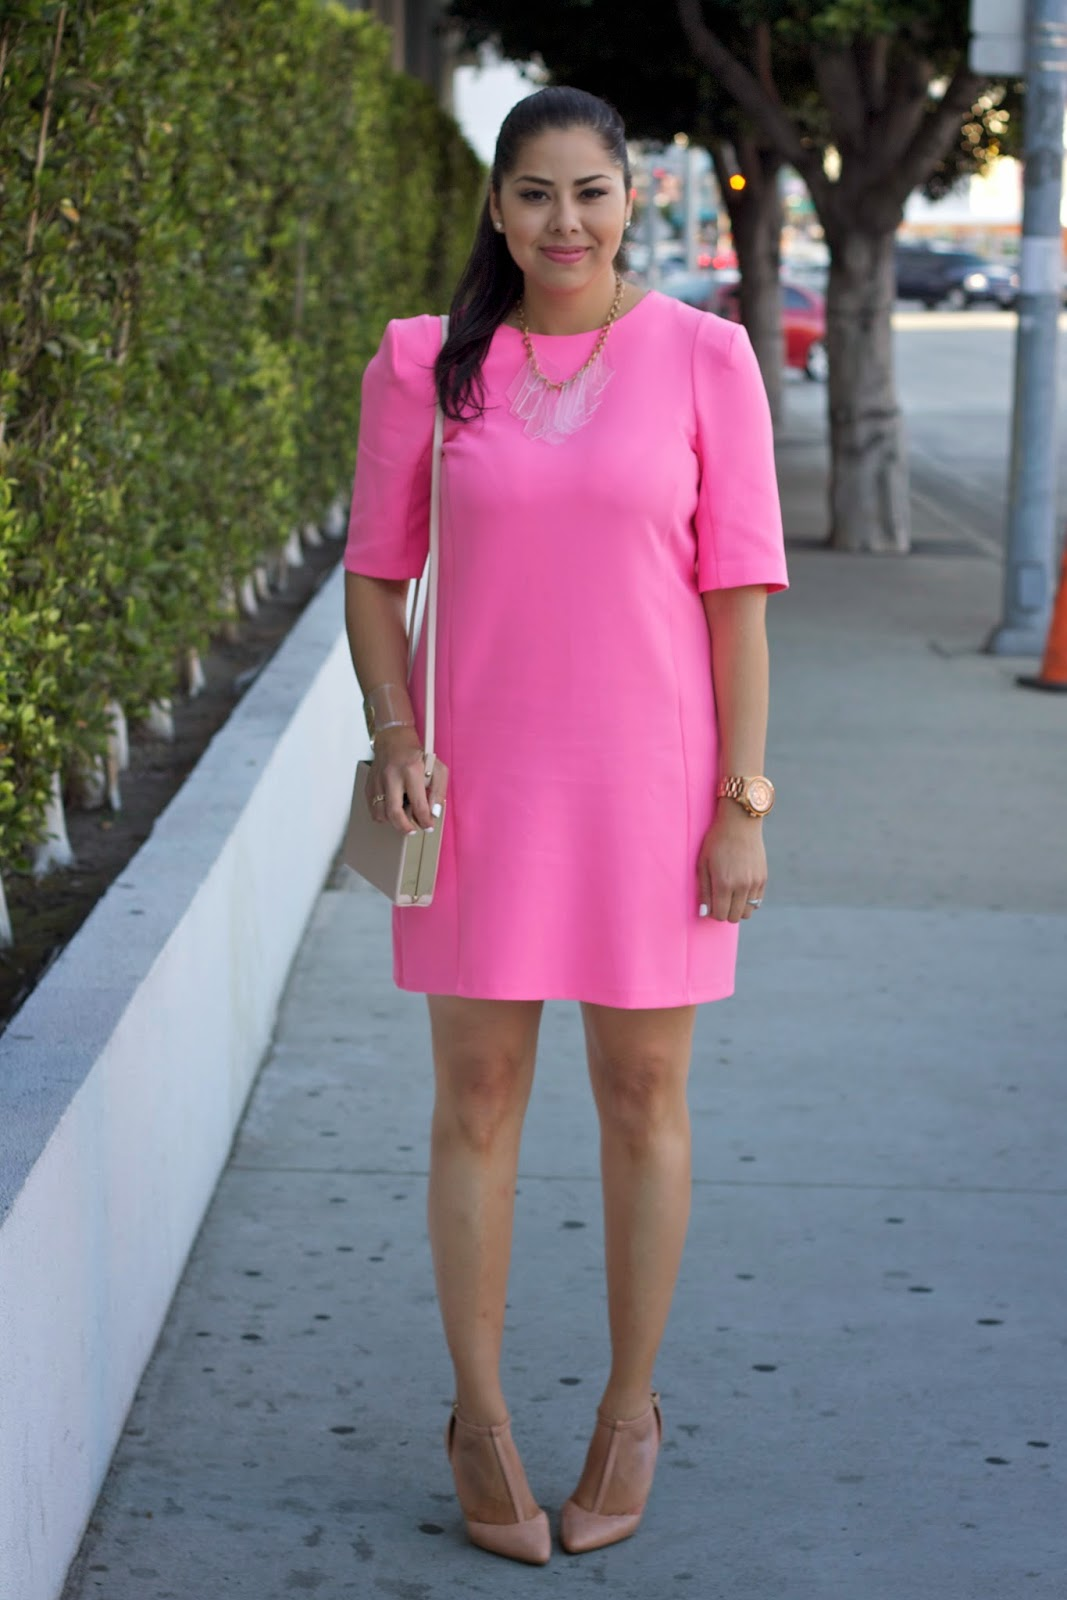 ASOS hot pink sheath dress